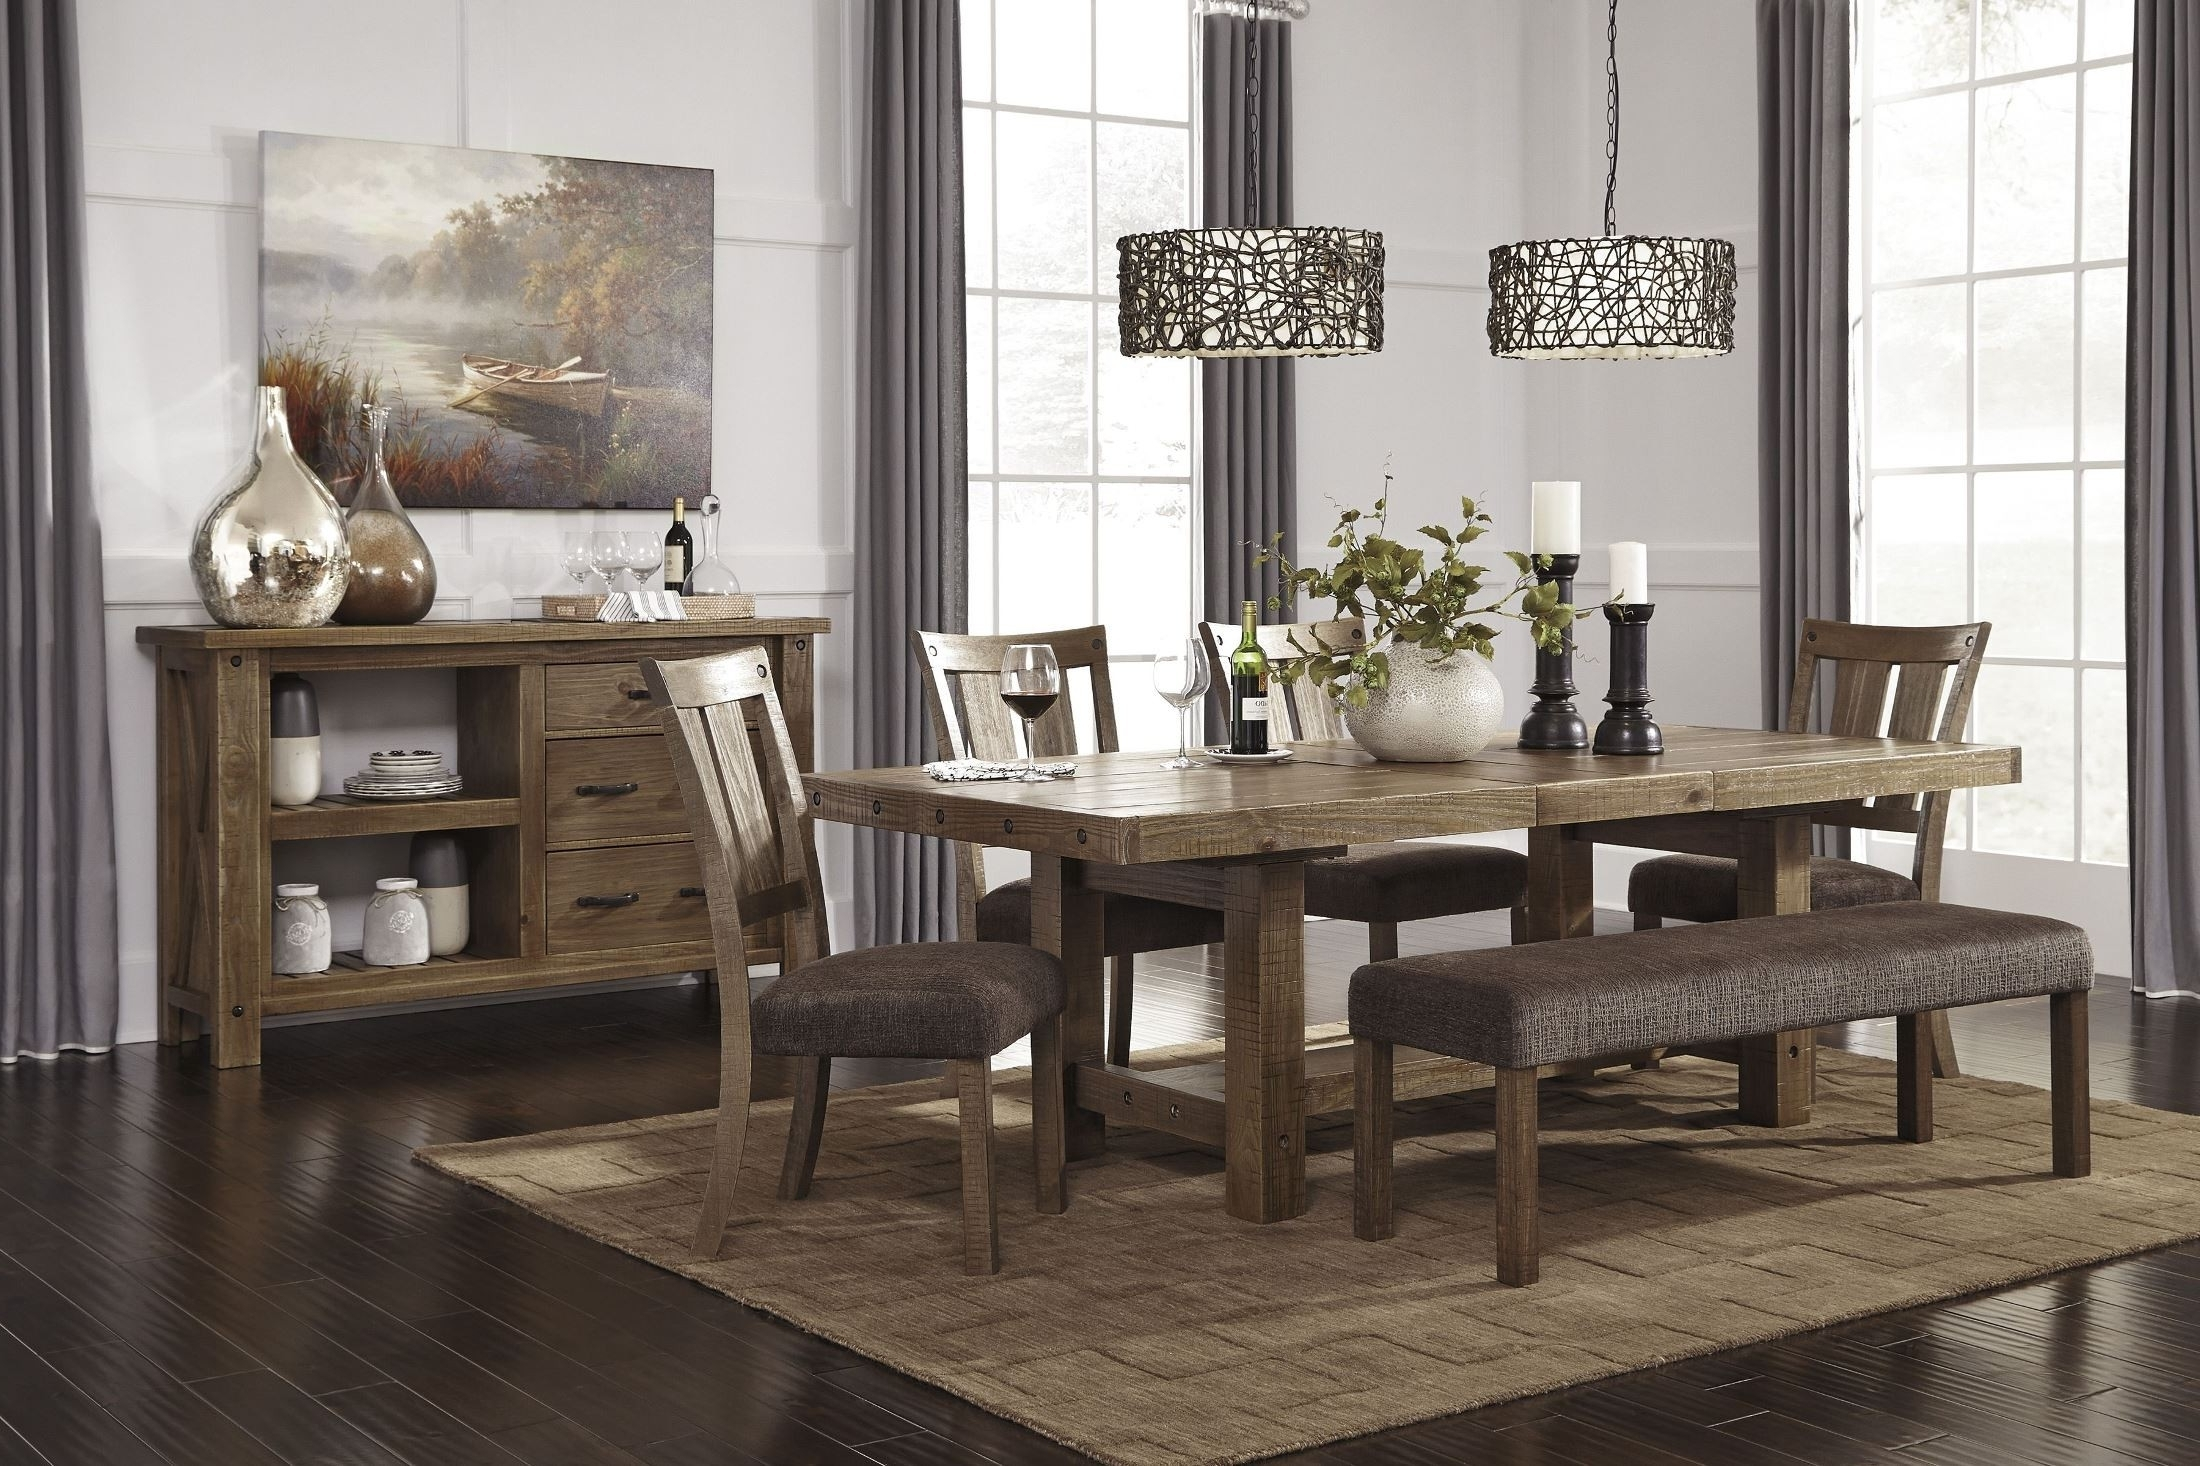 Newest Extendable Dining Tables And Chairs With Regard To Signature Designashley Tamilo Gray/brown Rectangular Extendable (View 16 of 25)